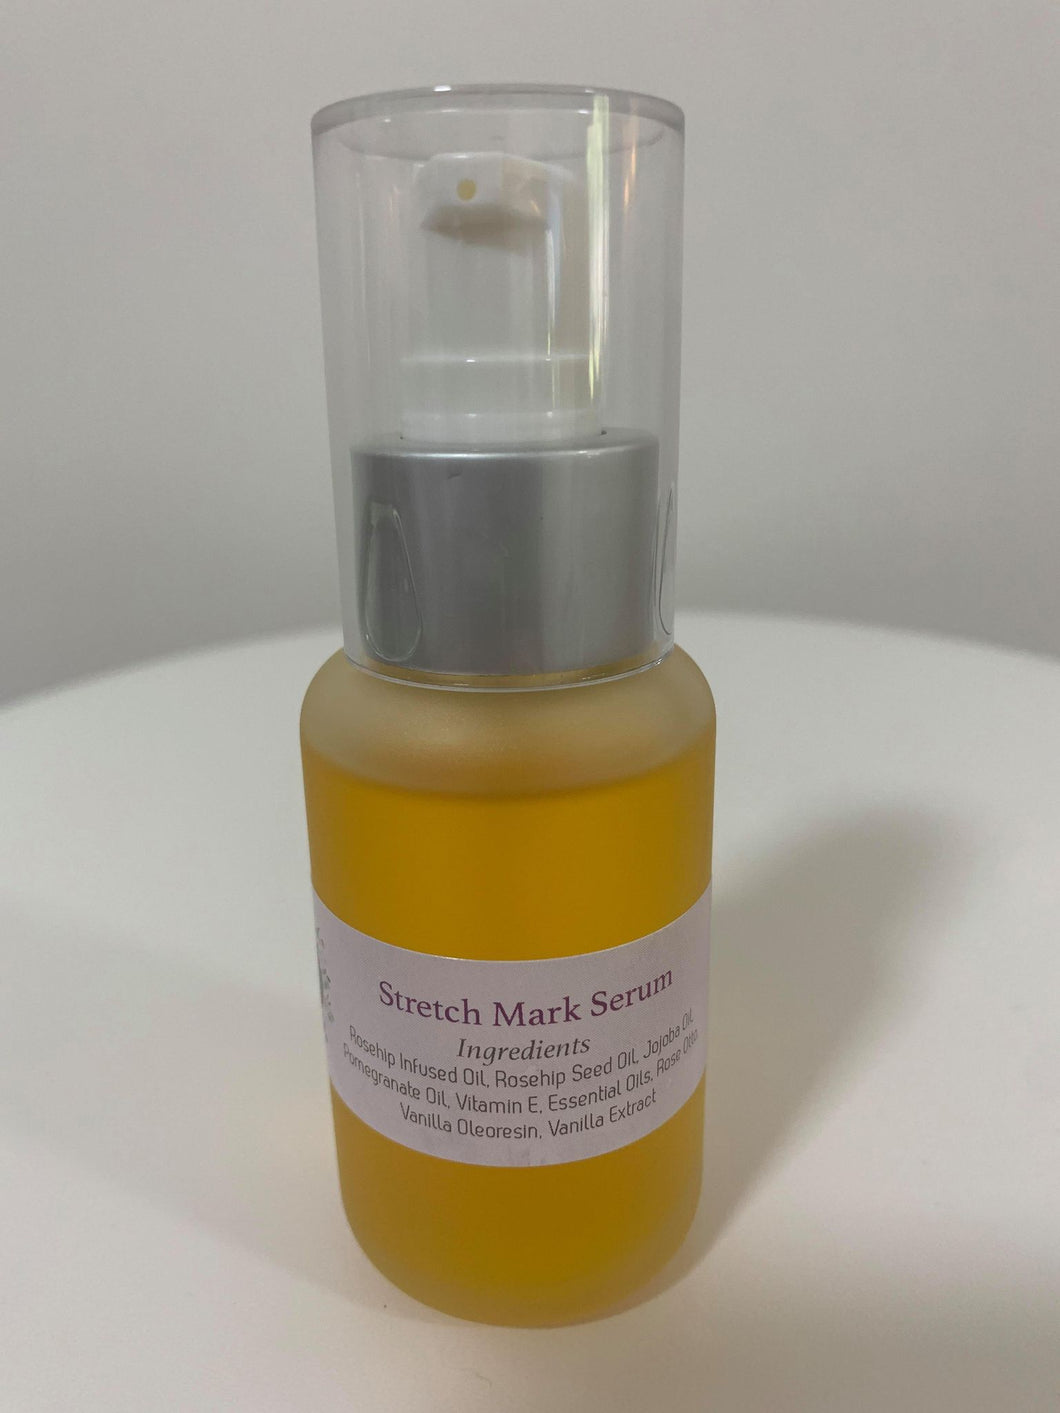 Stretch Mark Serum